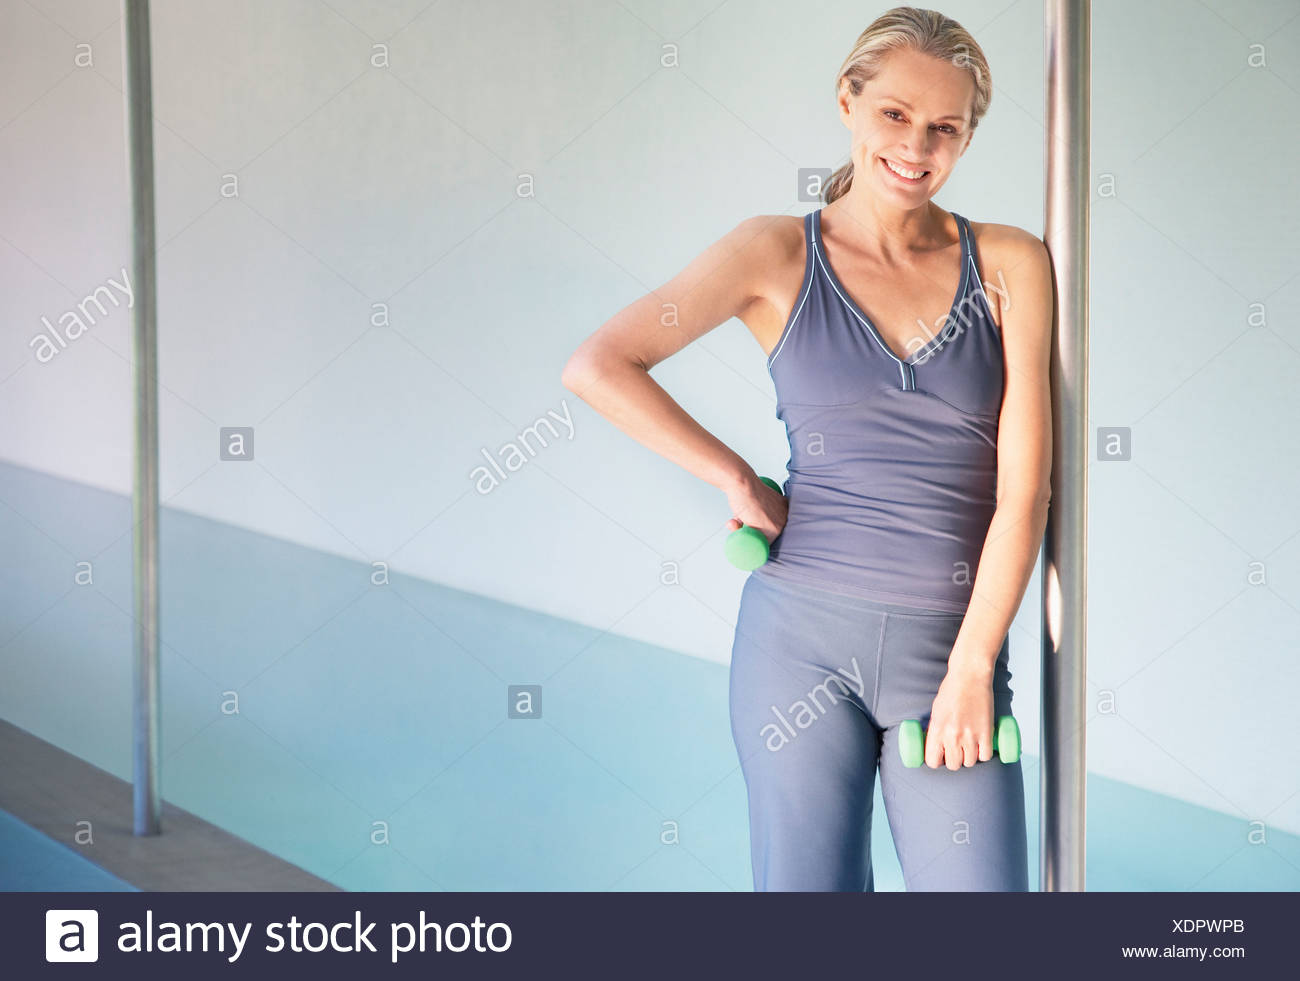 Woman holding small free weights by an indoor pool - Stock Image